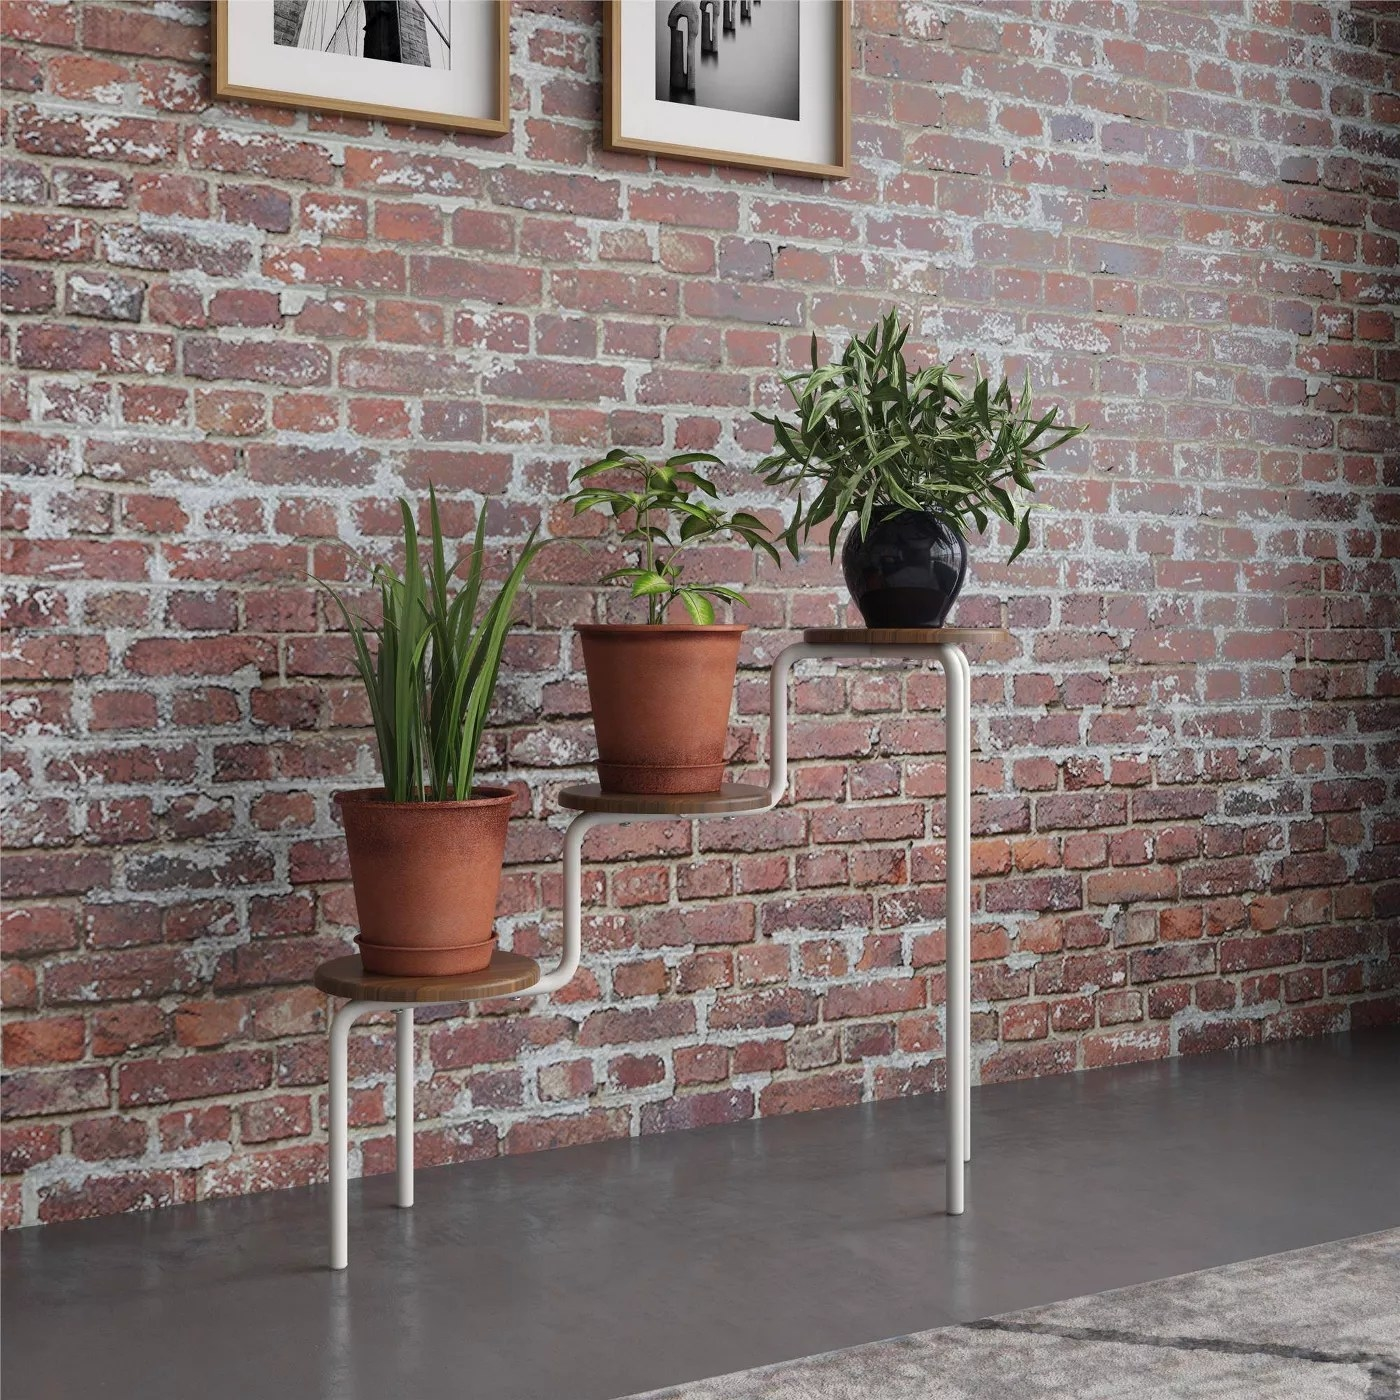 The wood and wire plant stand